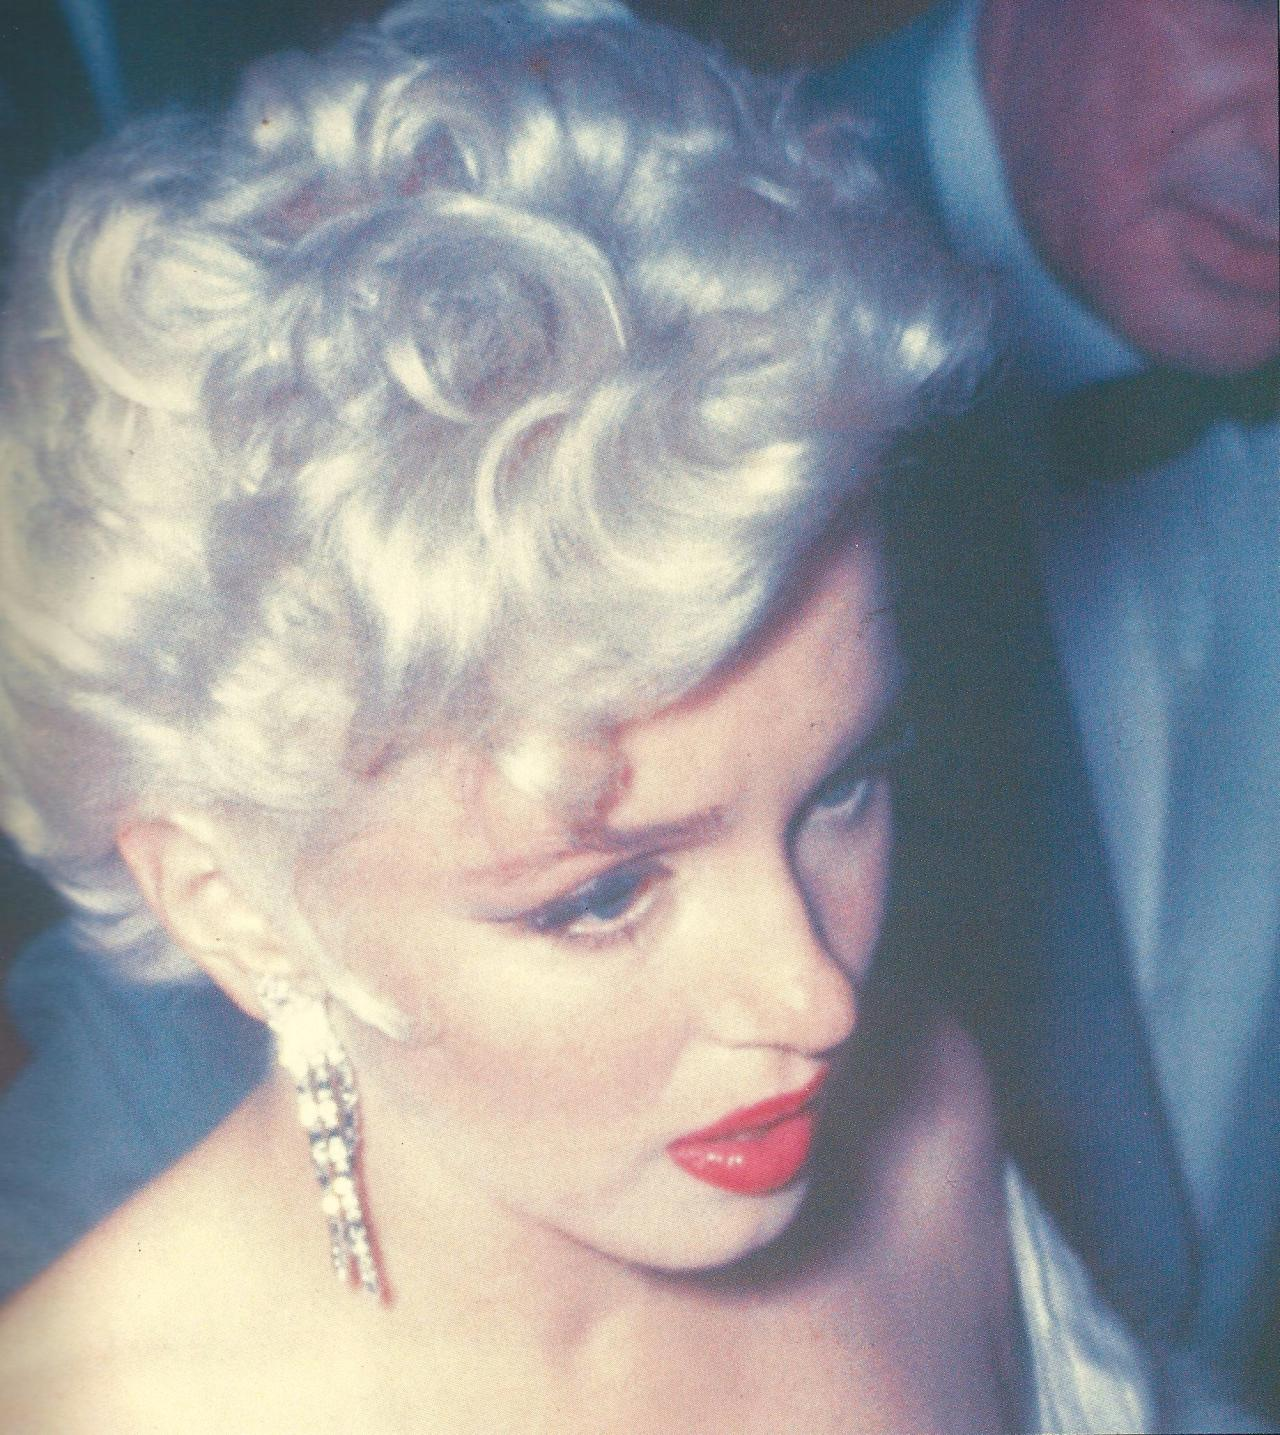 Marilyn photographed at the premiere for The Seven Year Itch, 1954